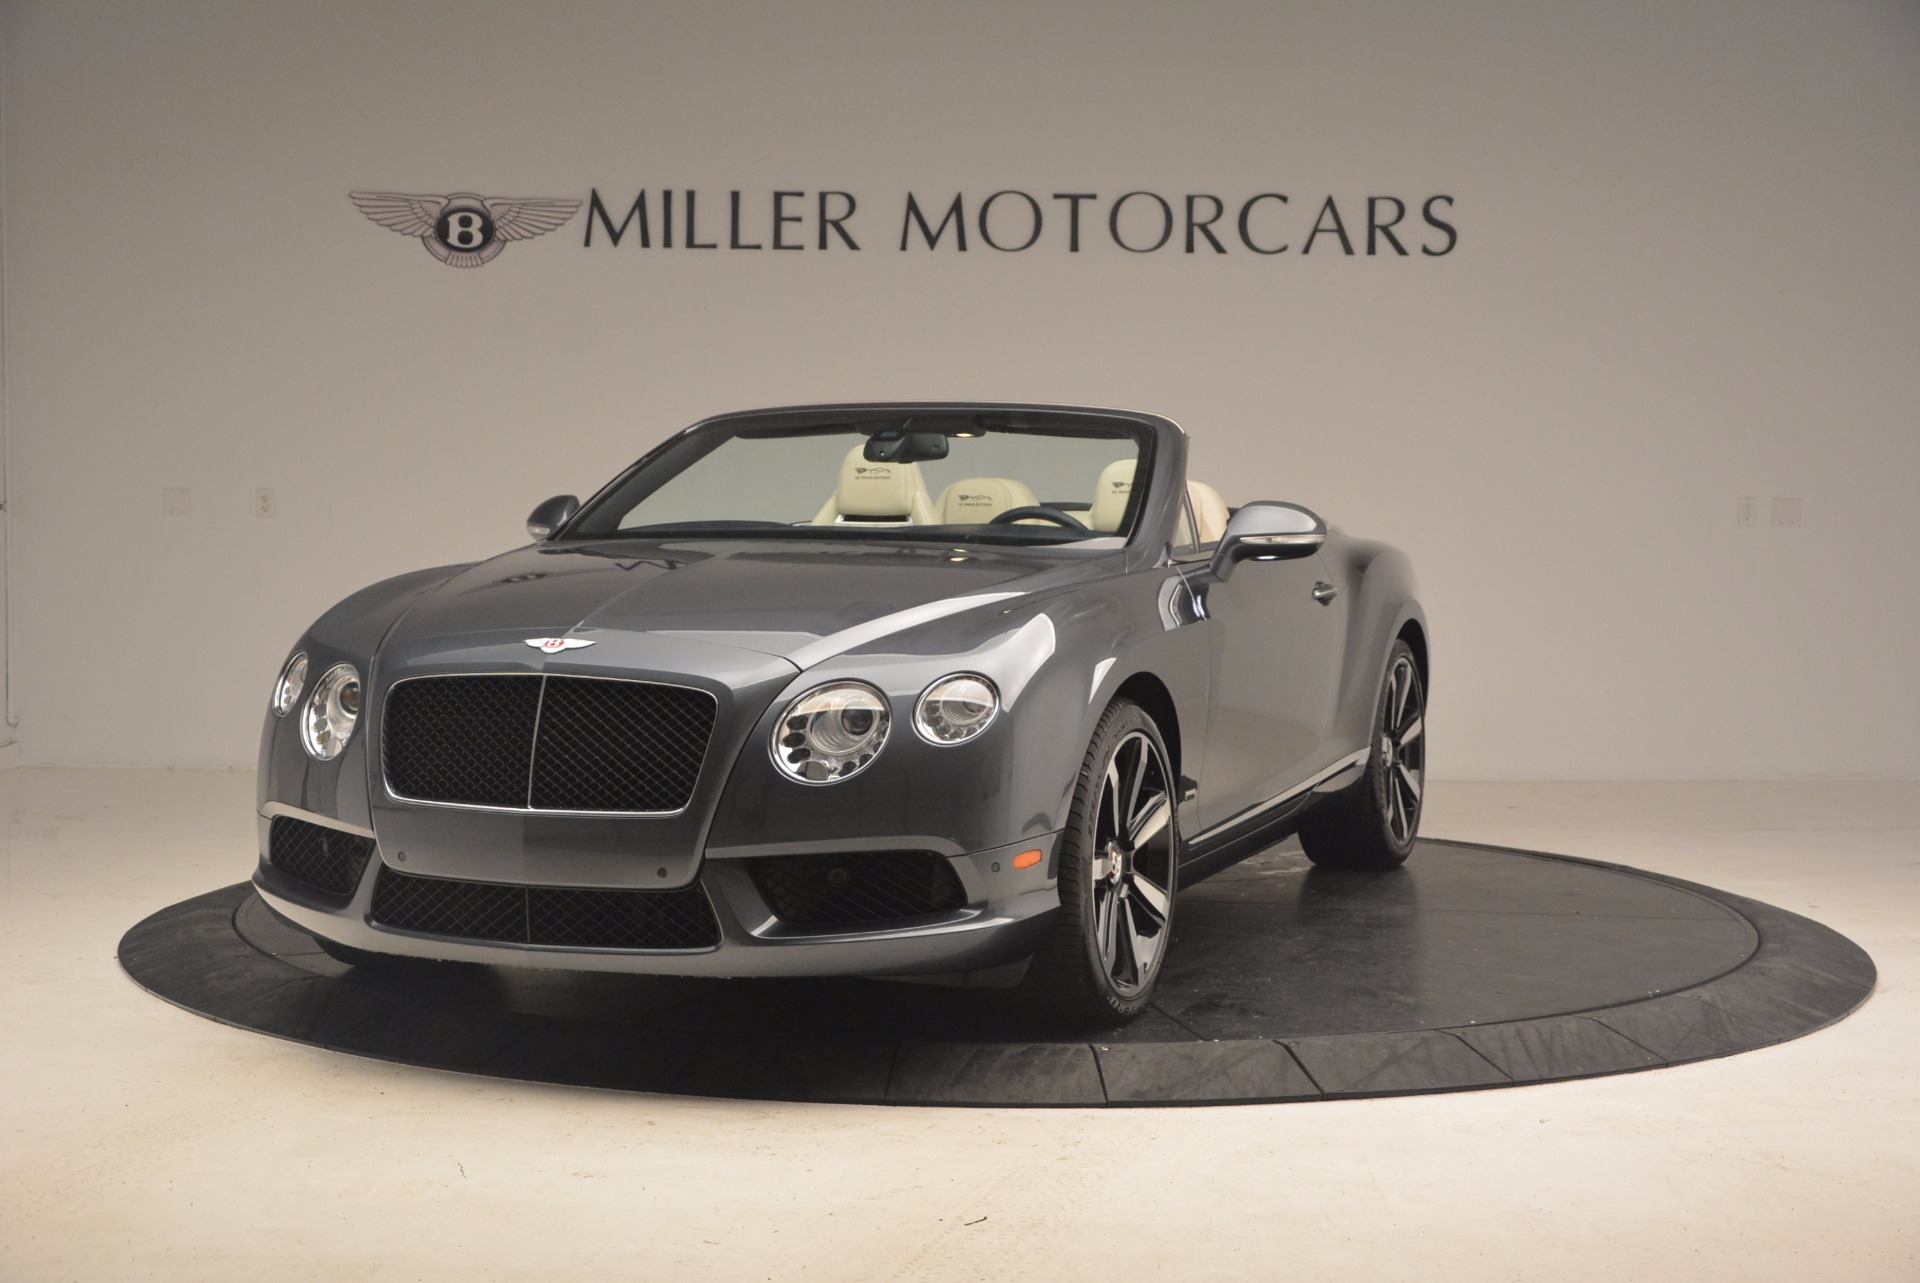 Used 2013 Bentley Continental GT V8 Le Mans Edition, 1 of 48 For Sale In Greenwich, CT 1288_main